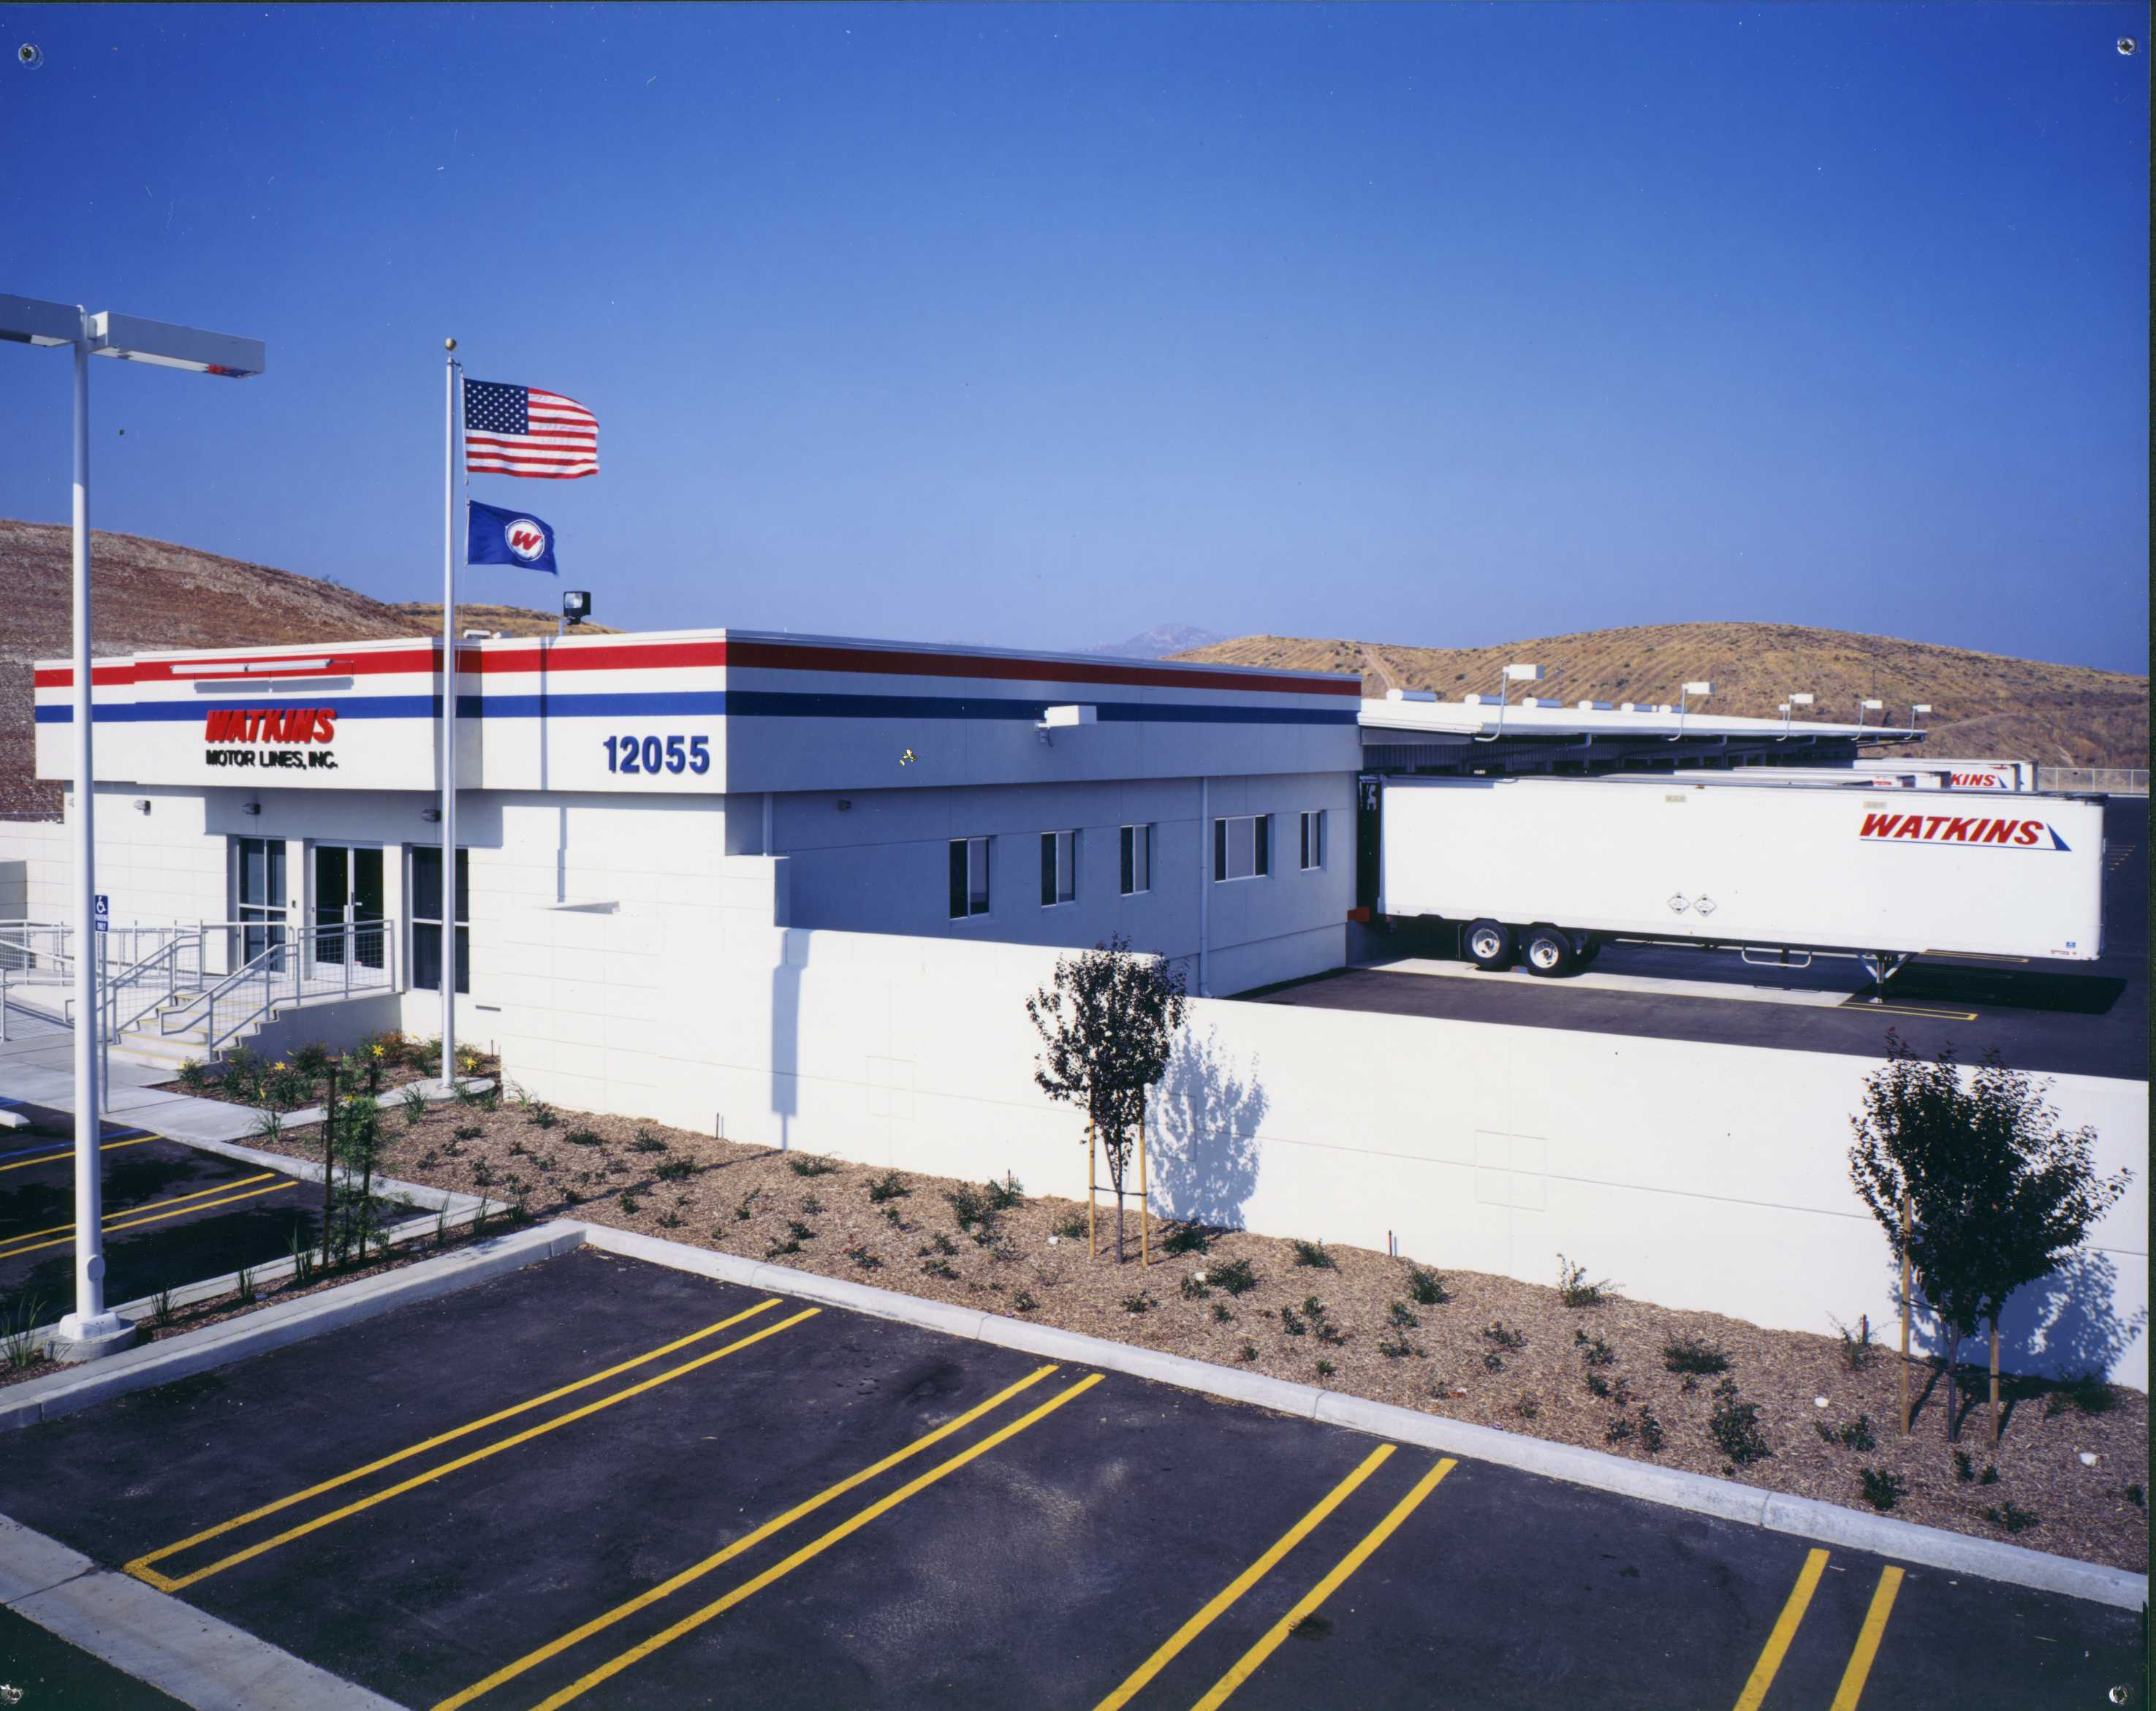 FedEx (Formerly Watkins Motor Lines) | The Lunz Group